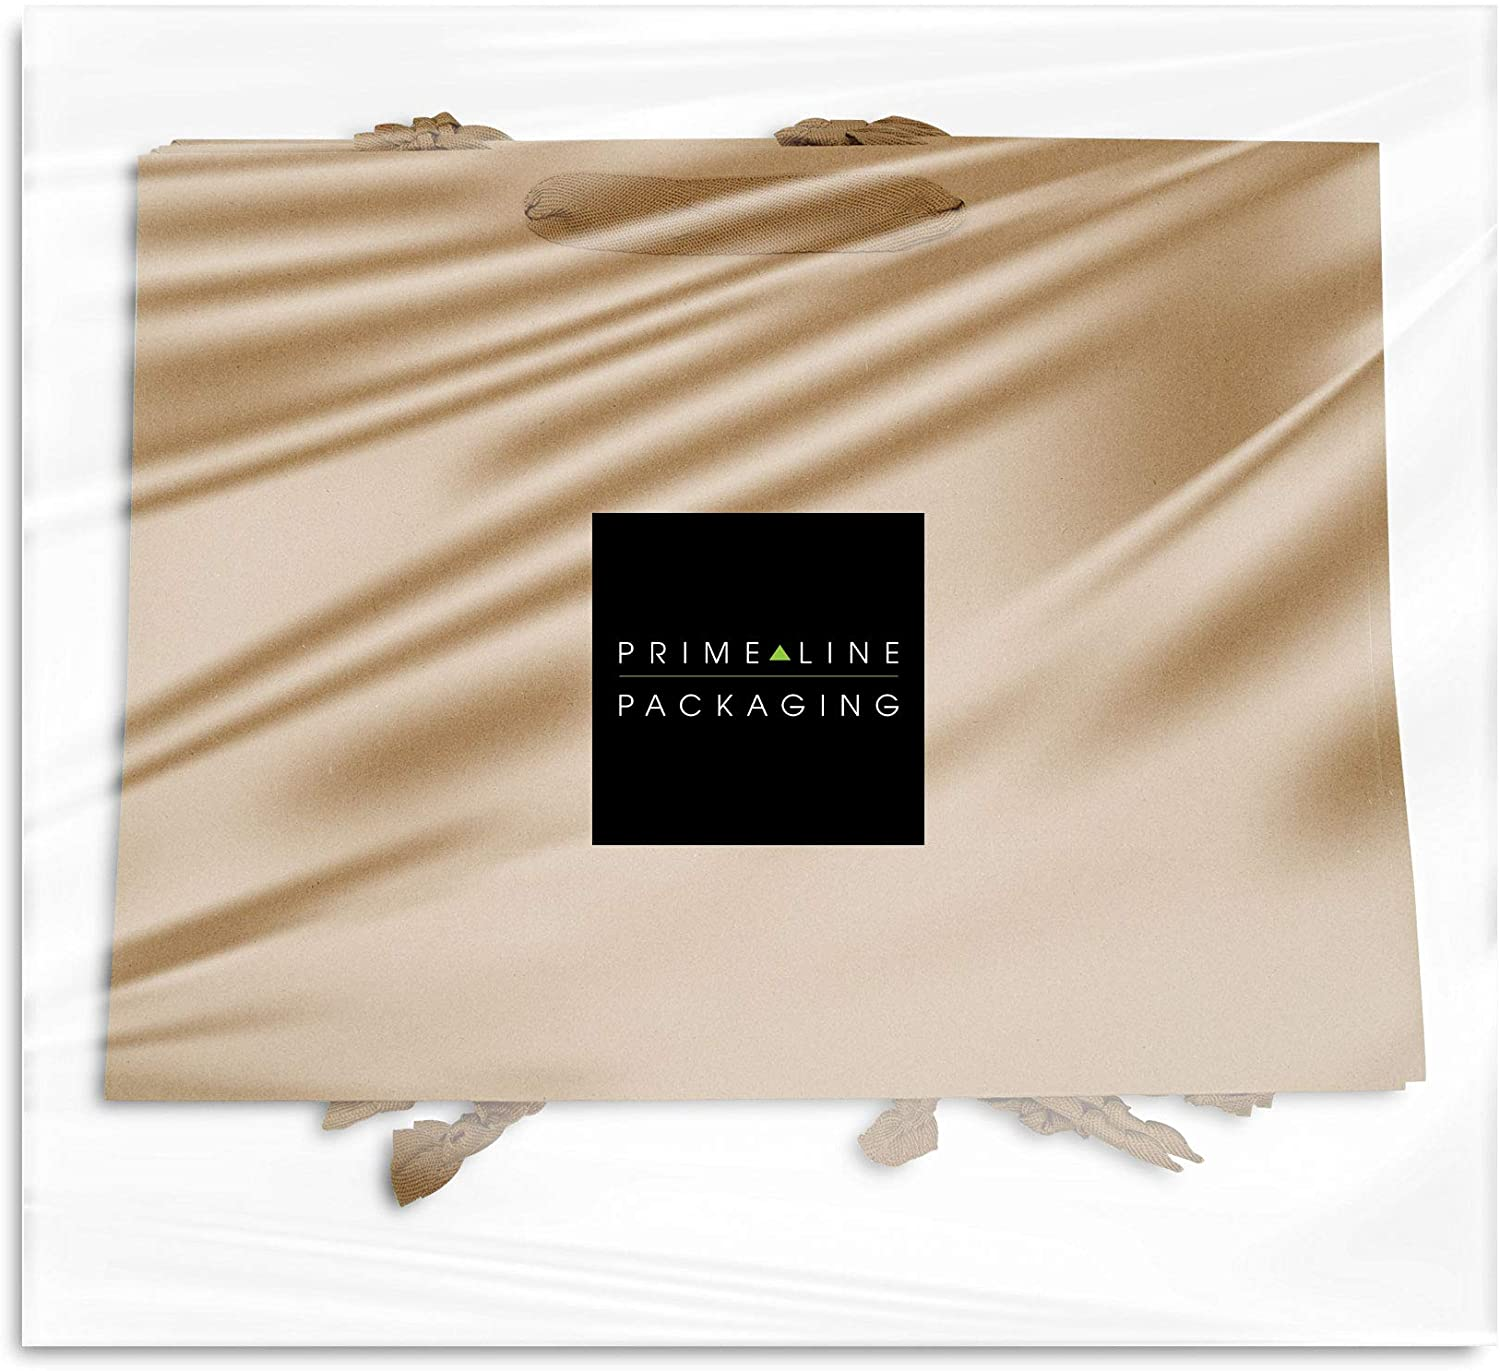 Merchandise Party Bulk Gift Bags Brown Paper Bags with Fancy Twill Handles Take-Out Retail Paper Shopping Bags Vogue Size Large Kraft Favor Store Goody 16x6x12 inches 50 Pcs